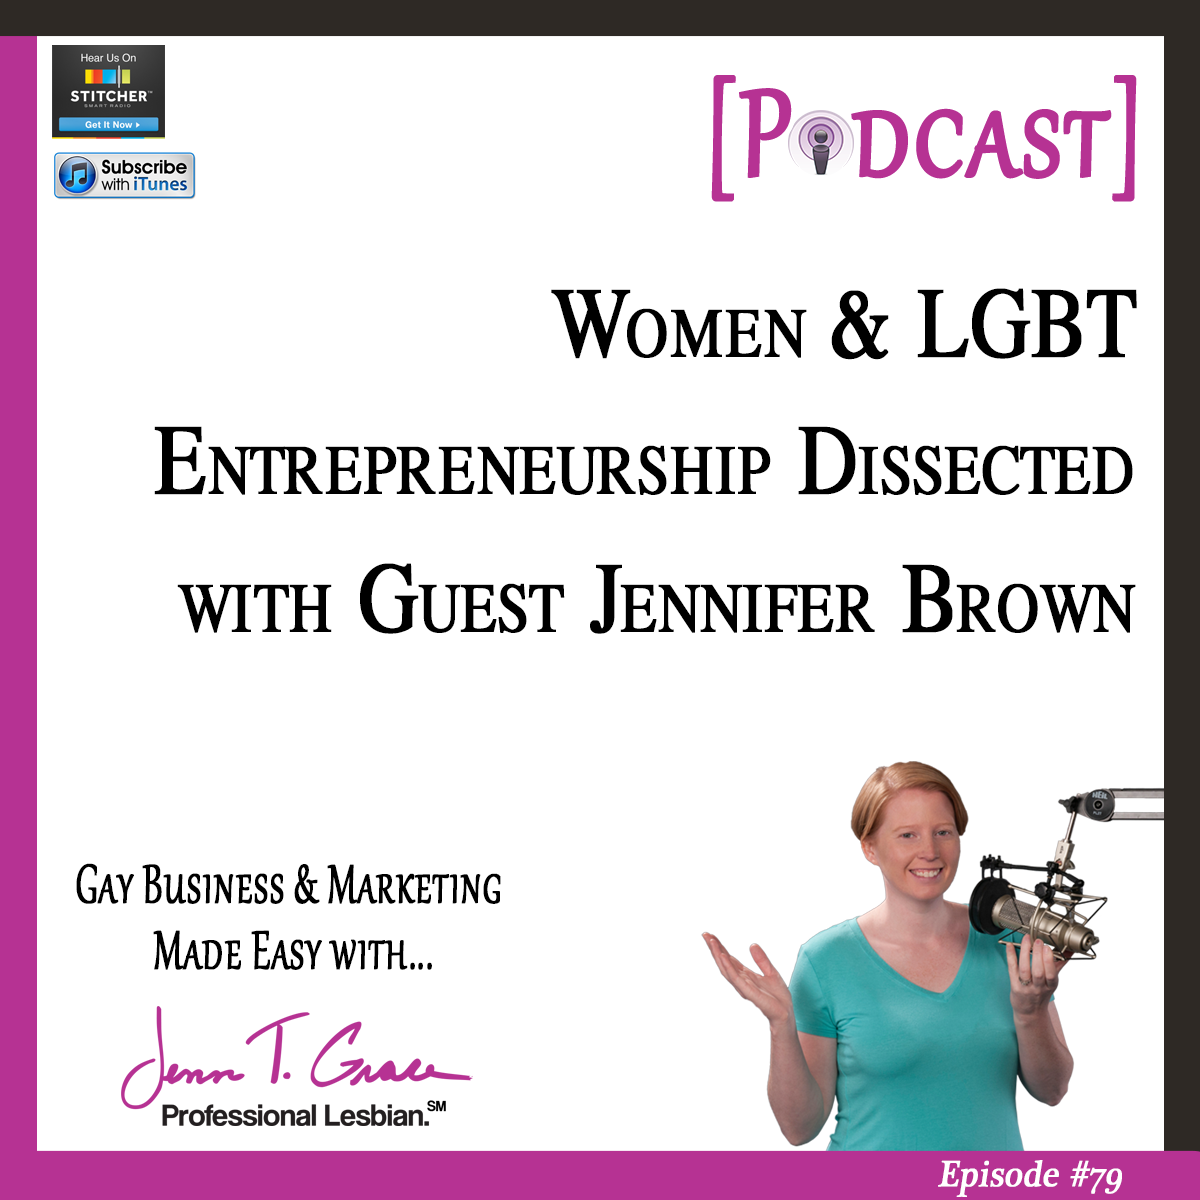 #79: Women & LGBT Entrepreneurship Dissected with Guest Jennifer Brown